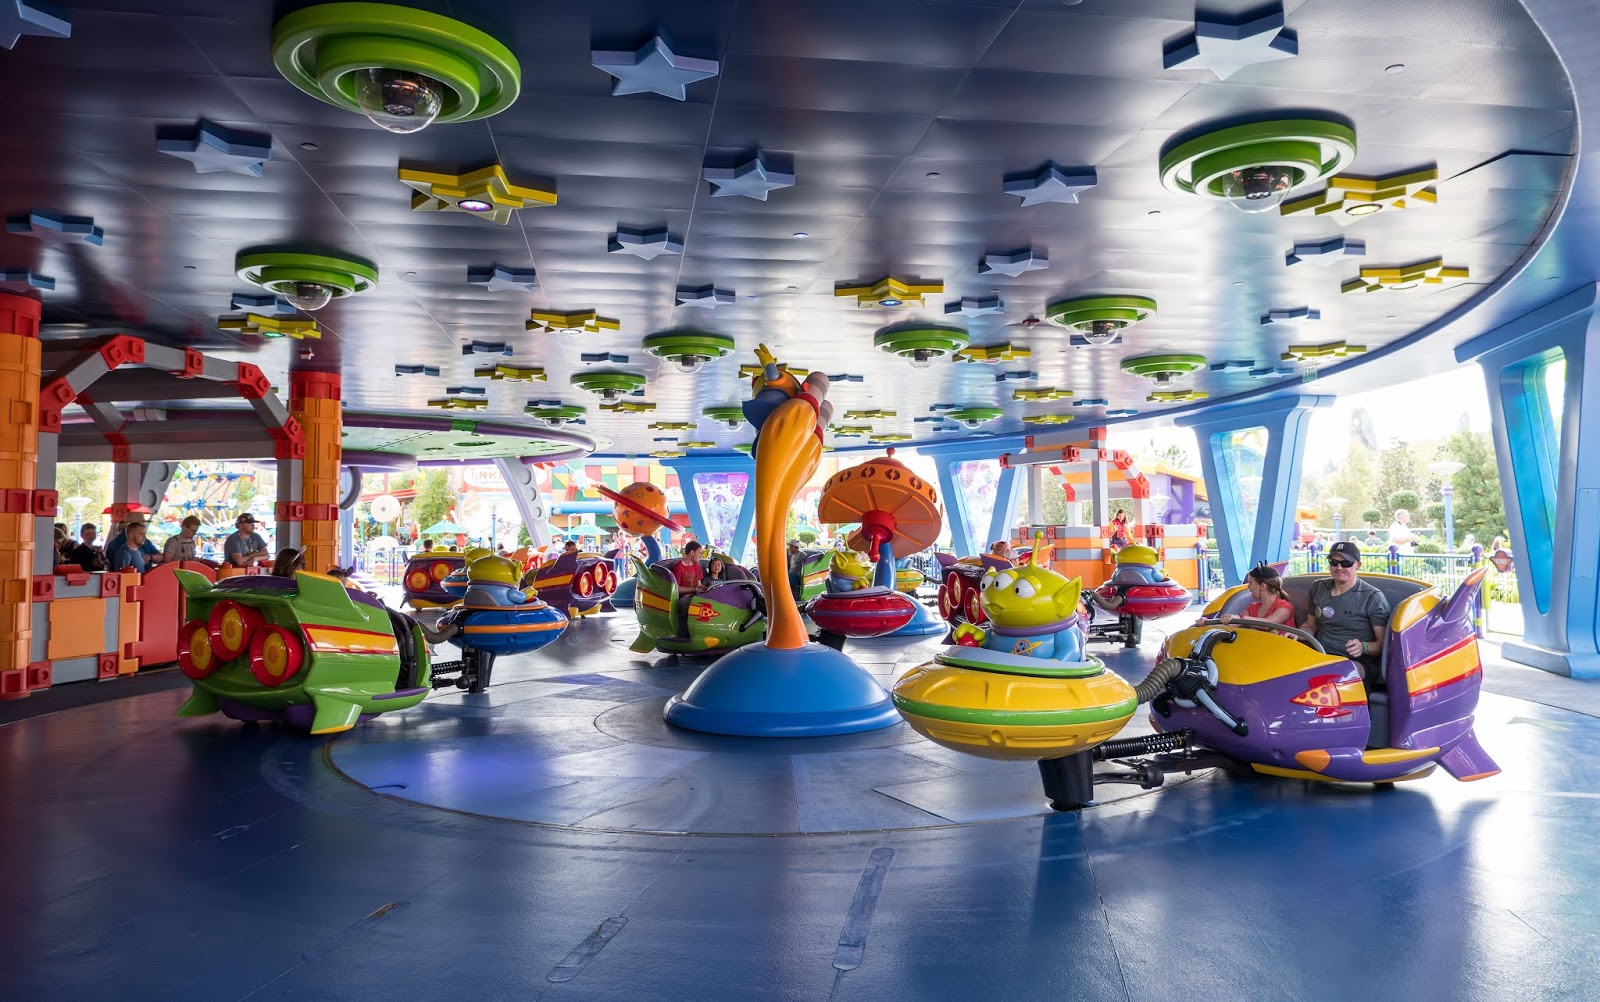 Alien Swirling Saucers at Disney's Hollywood Studios, Walt Disney World